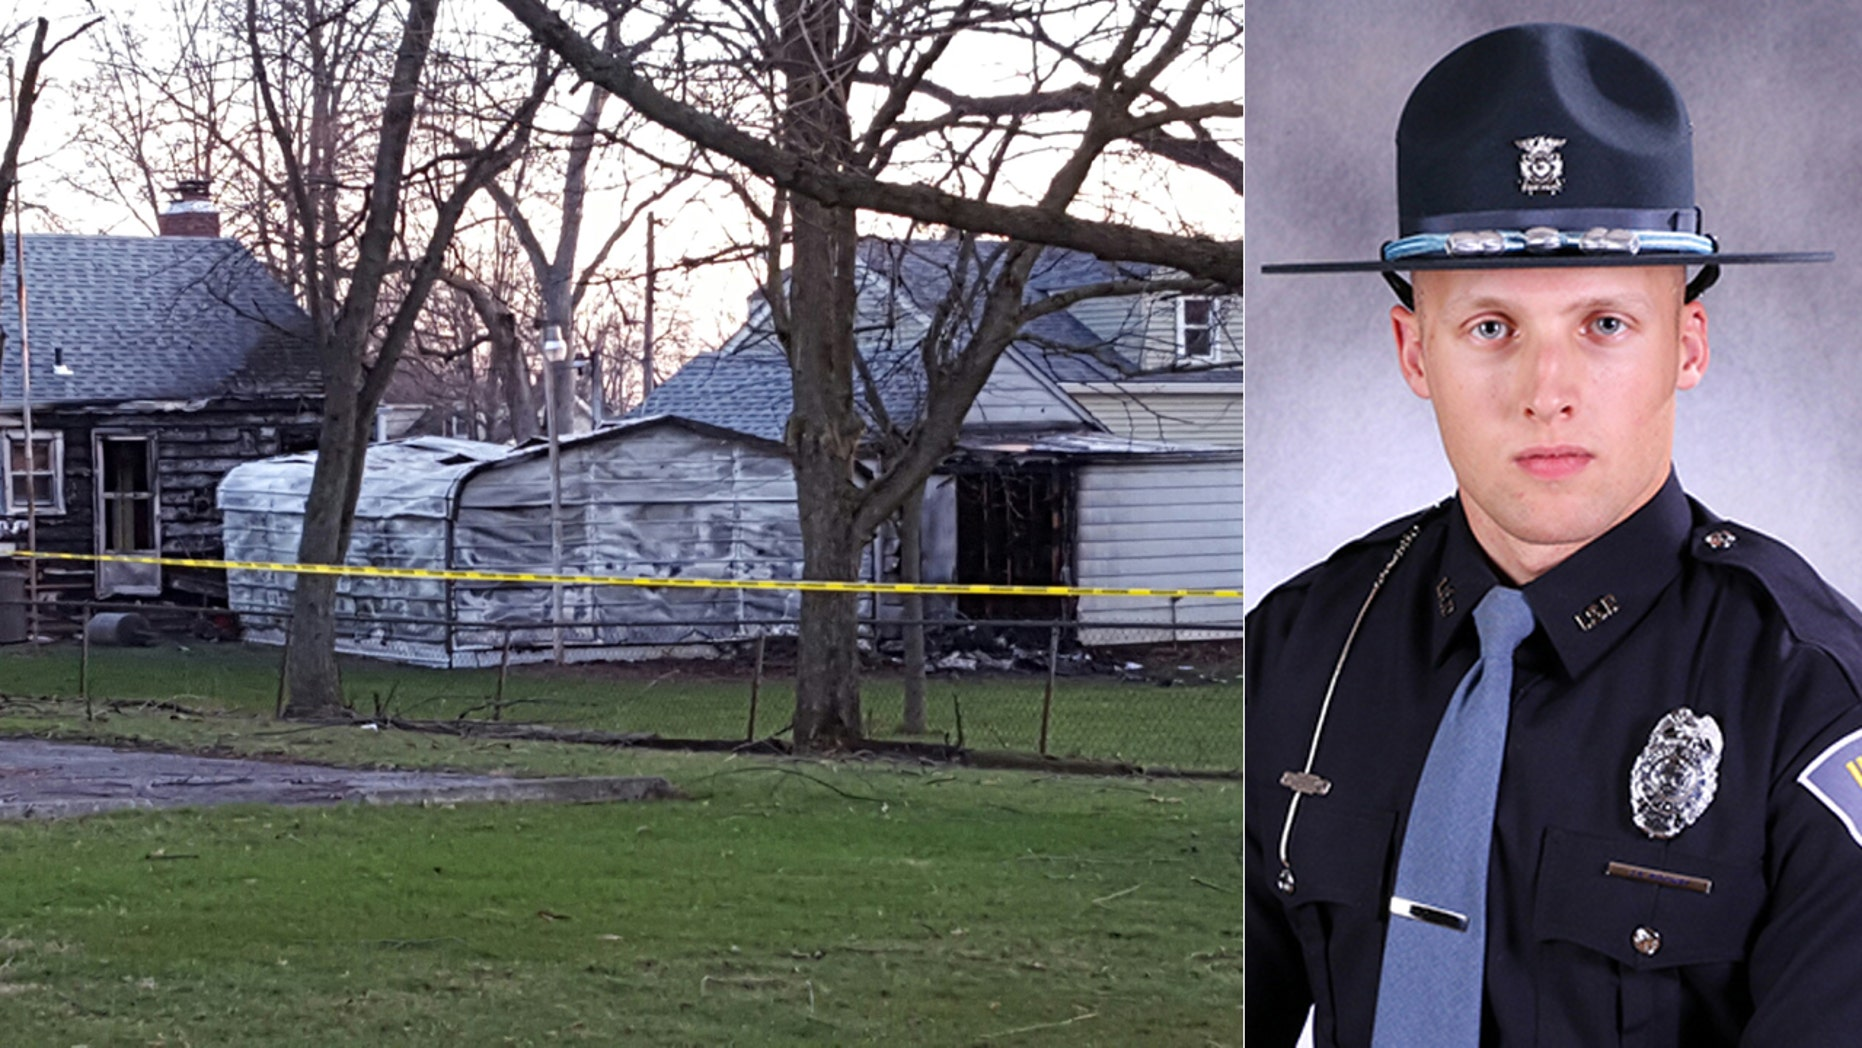 The scene of the fire (left) and Indiana State Police Trooper Jacob Ridgway (right).